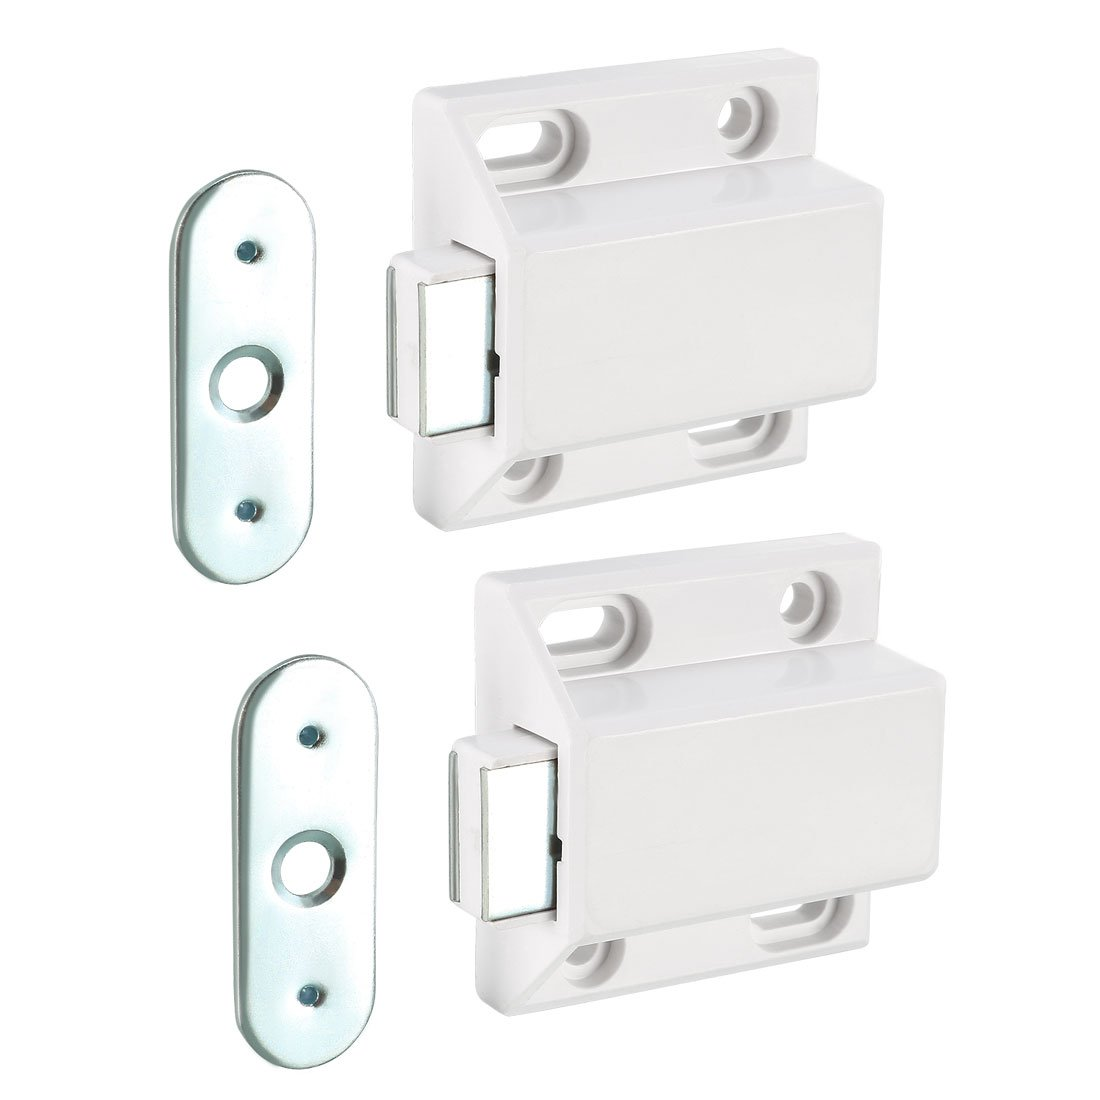 sourcingmap Magnetic Home Kitchen Cabinet Cupboard Door Catch Latch